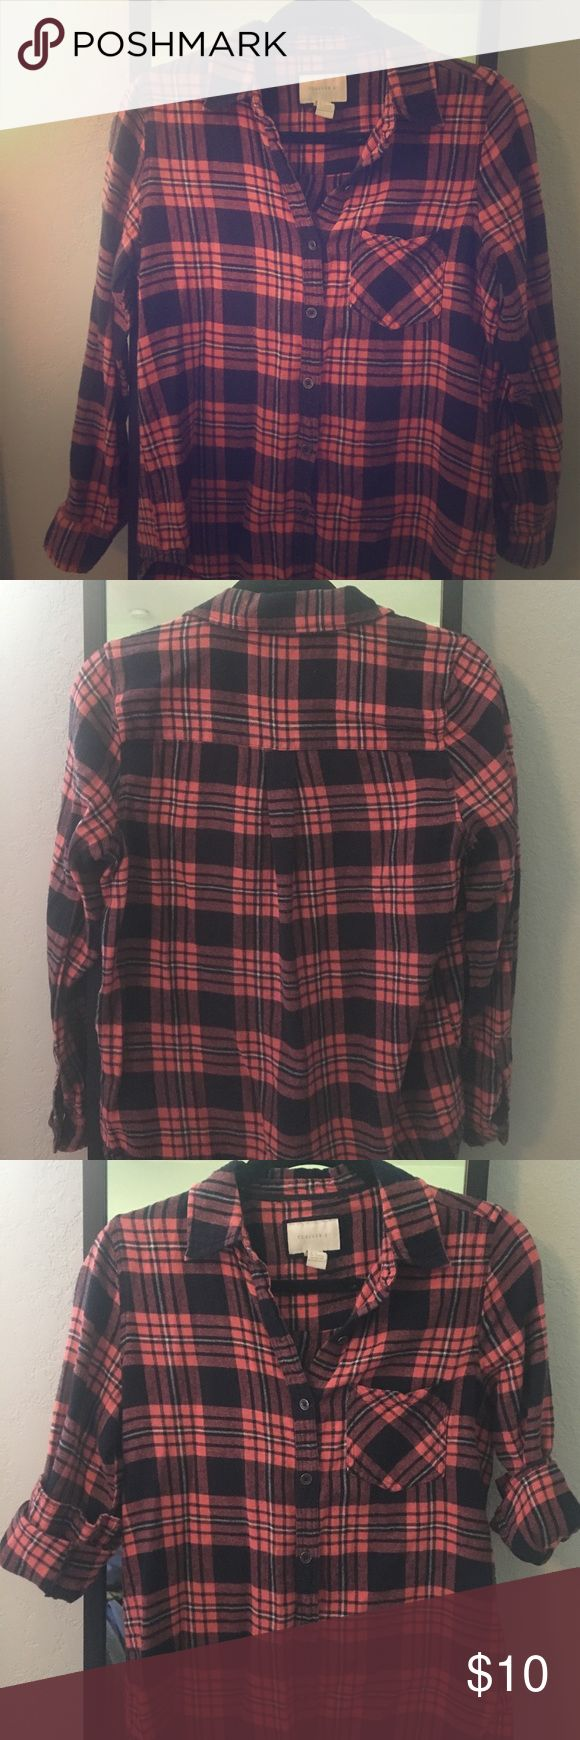 Forever21 blue and orange lightweight flannel Lightweight navy blue and orange (salmon pink)  flannel shirt, cute with white shorts/pants or light denim boyfriend shorts/jeans. Front pocket, button-down. Size Small Forever 21 Tops Button Down Shirts